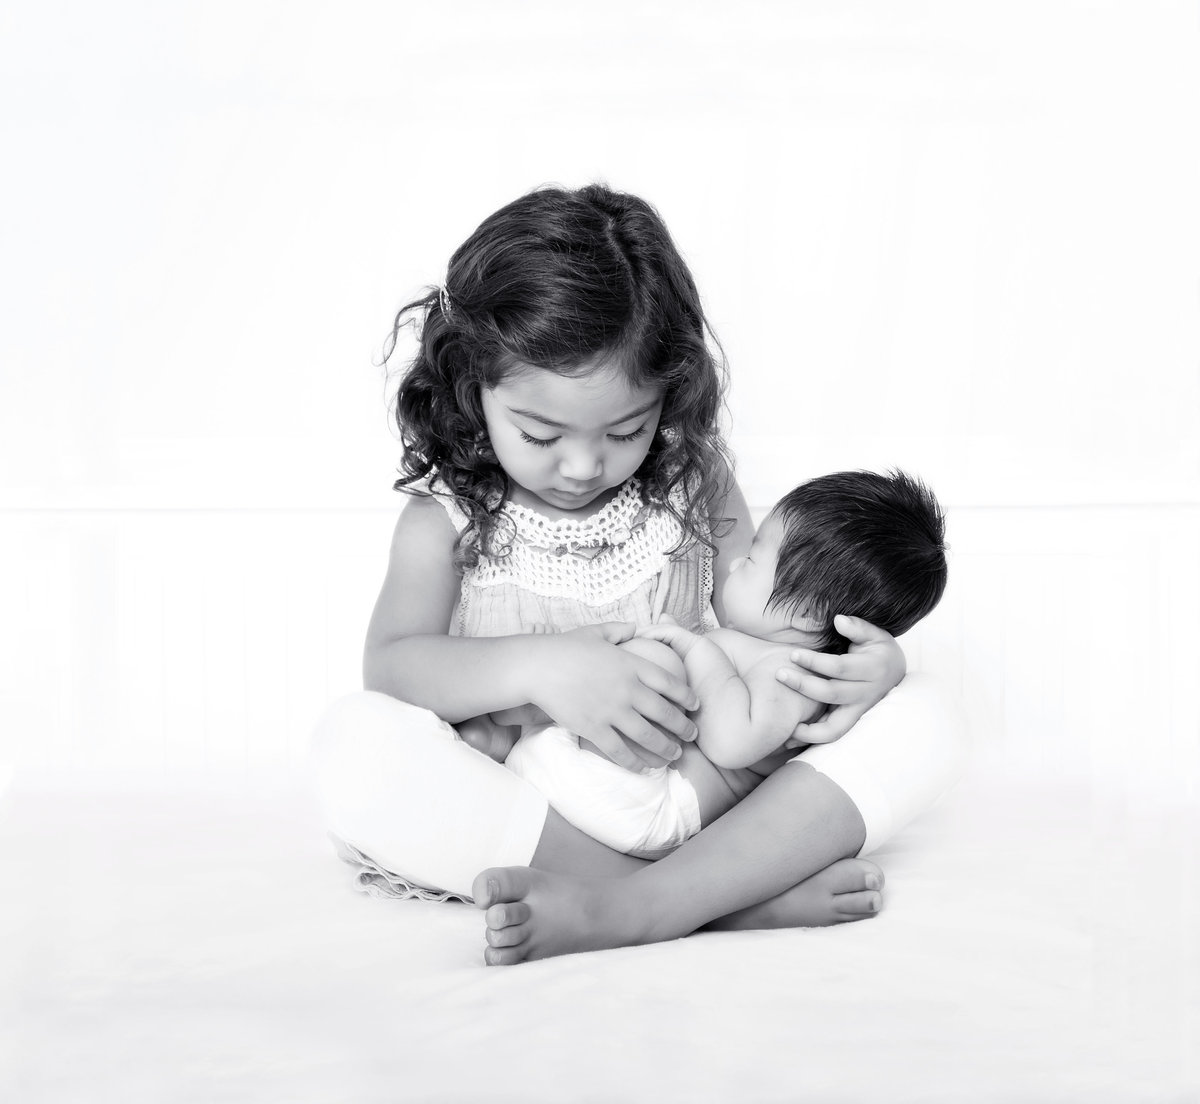 Black and white photo of big sister sitting on the floor cradling his baby sister in her arms as she gently smiles down at her